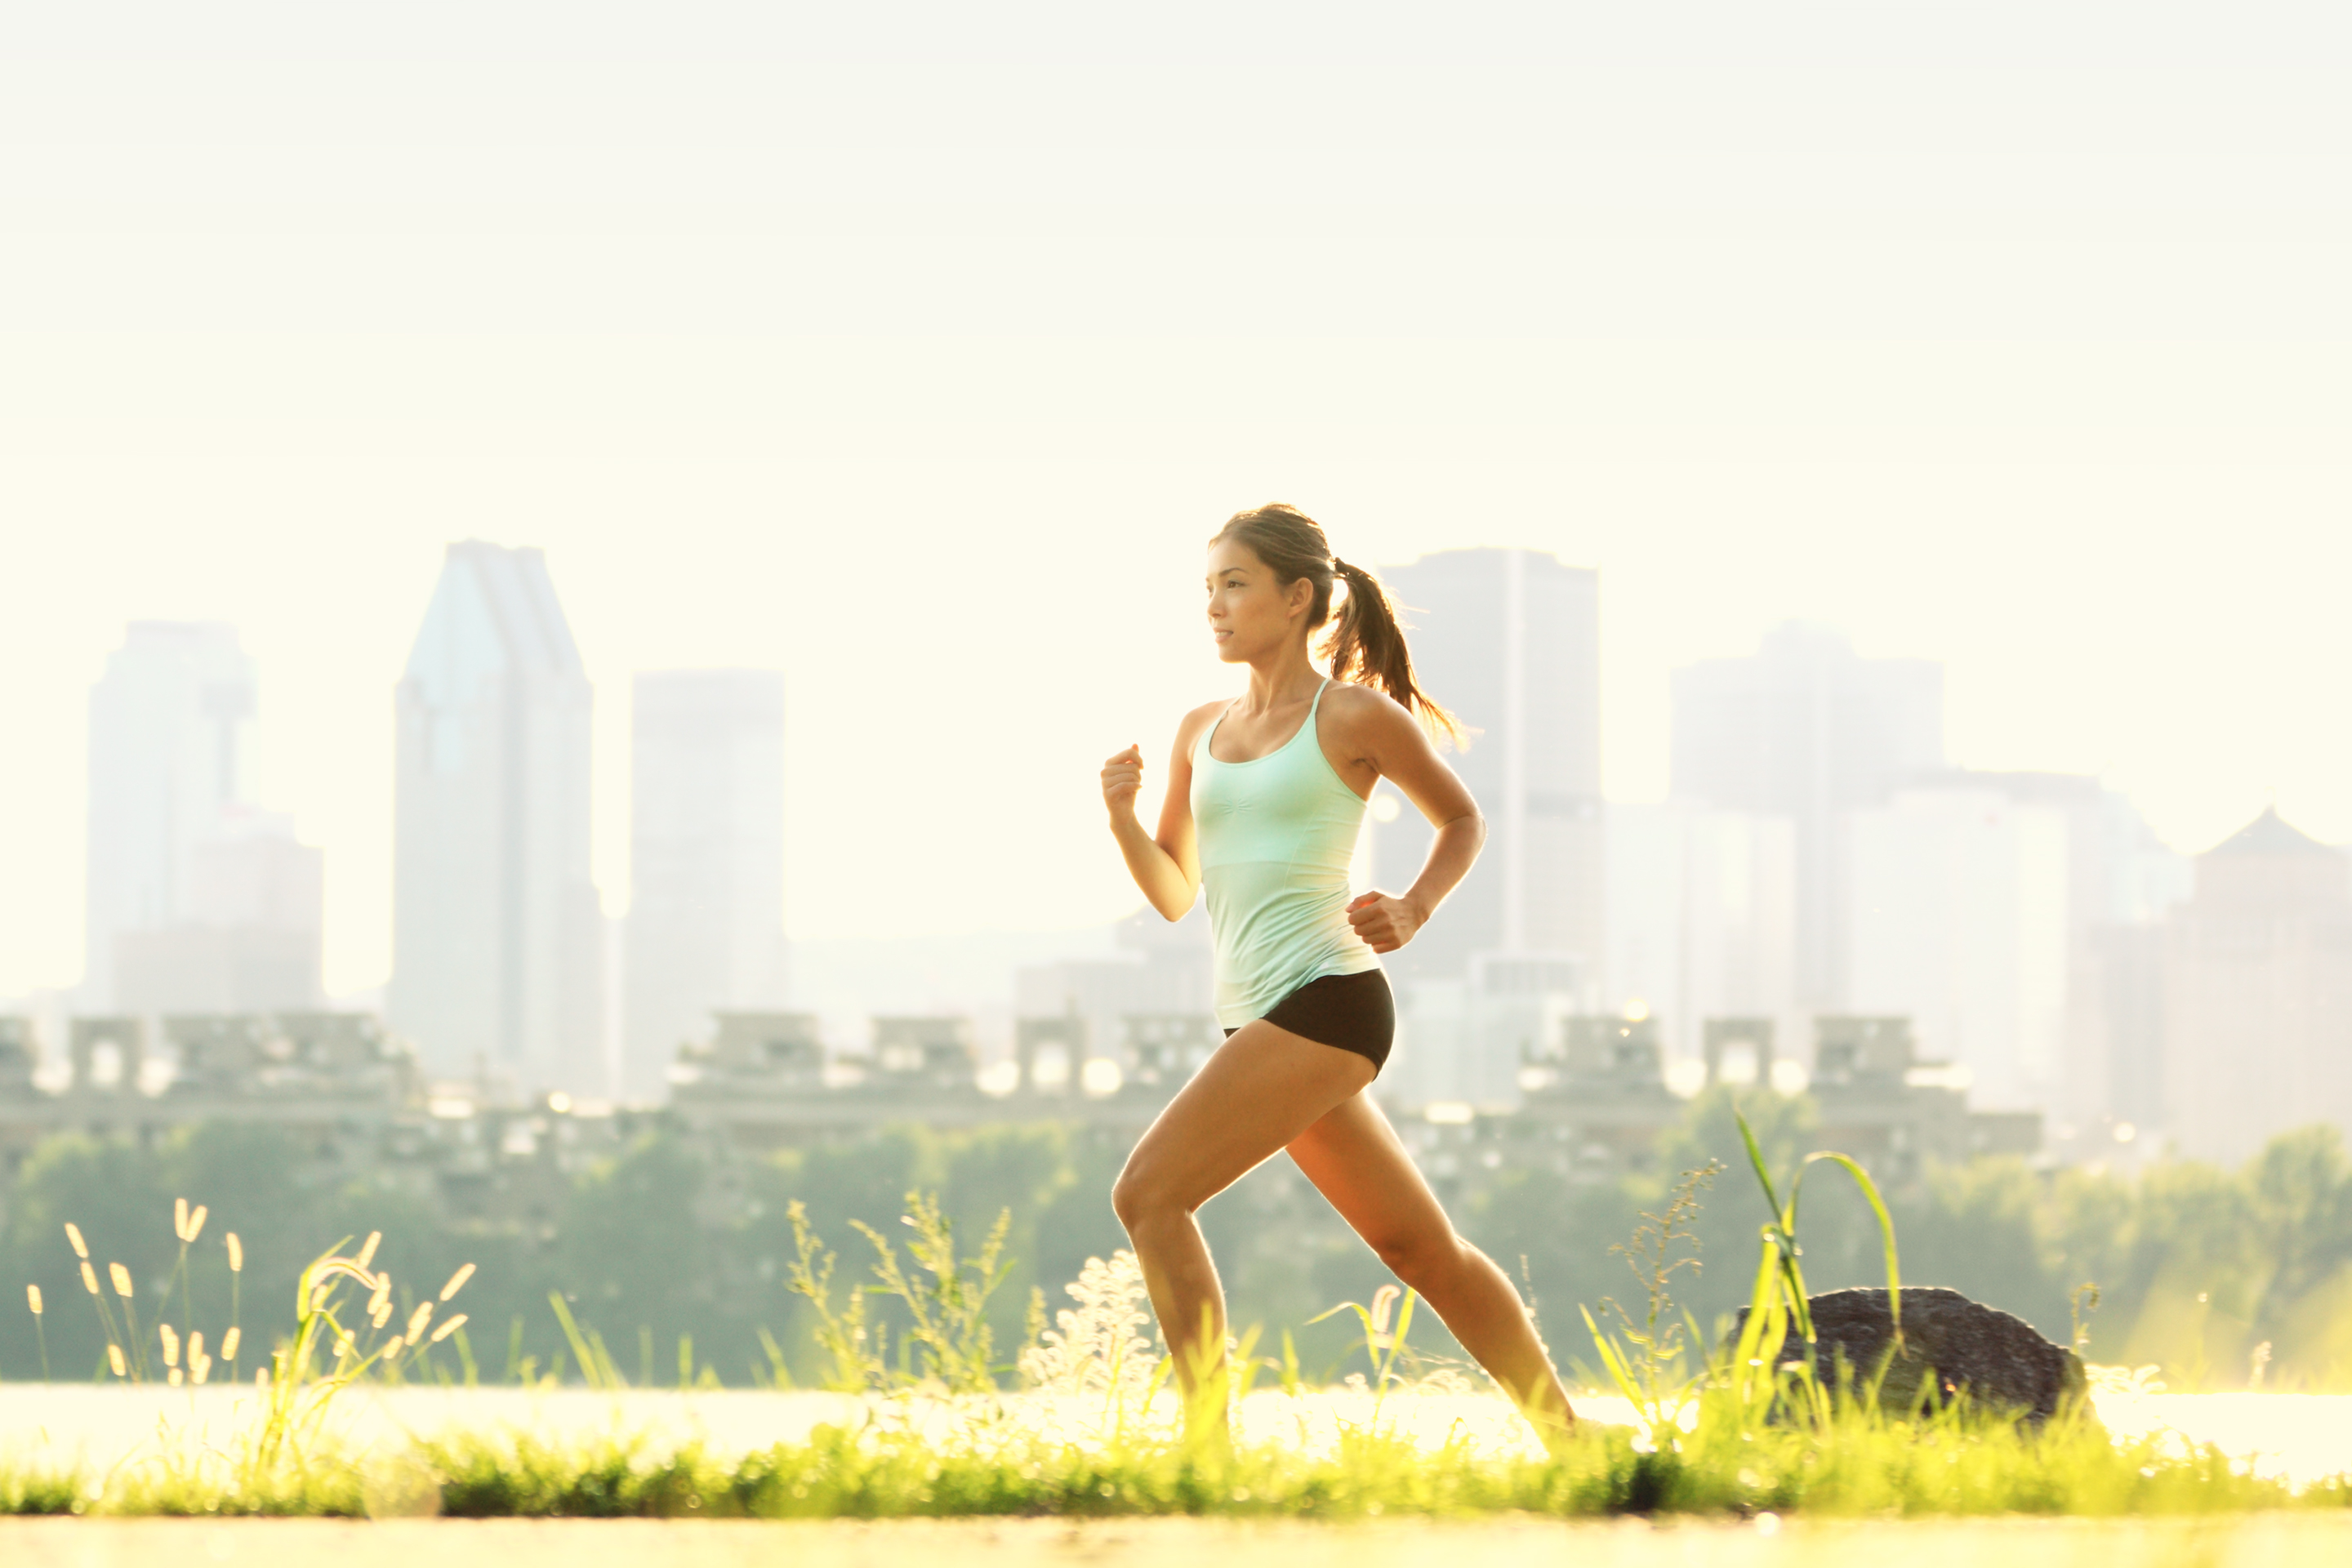 Shawn Johnson's the body department - Tips for New Runners